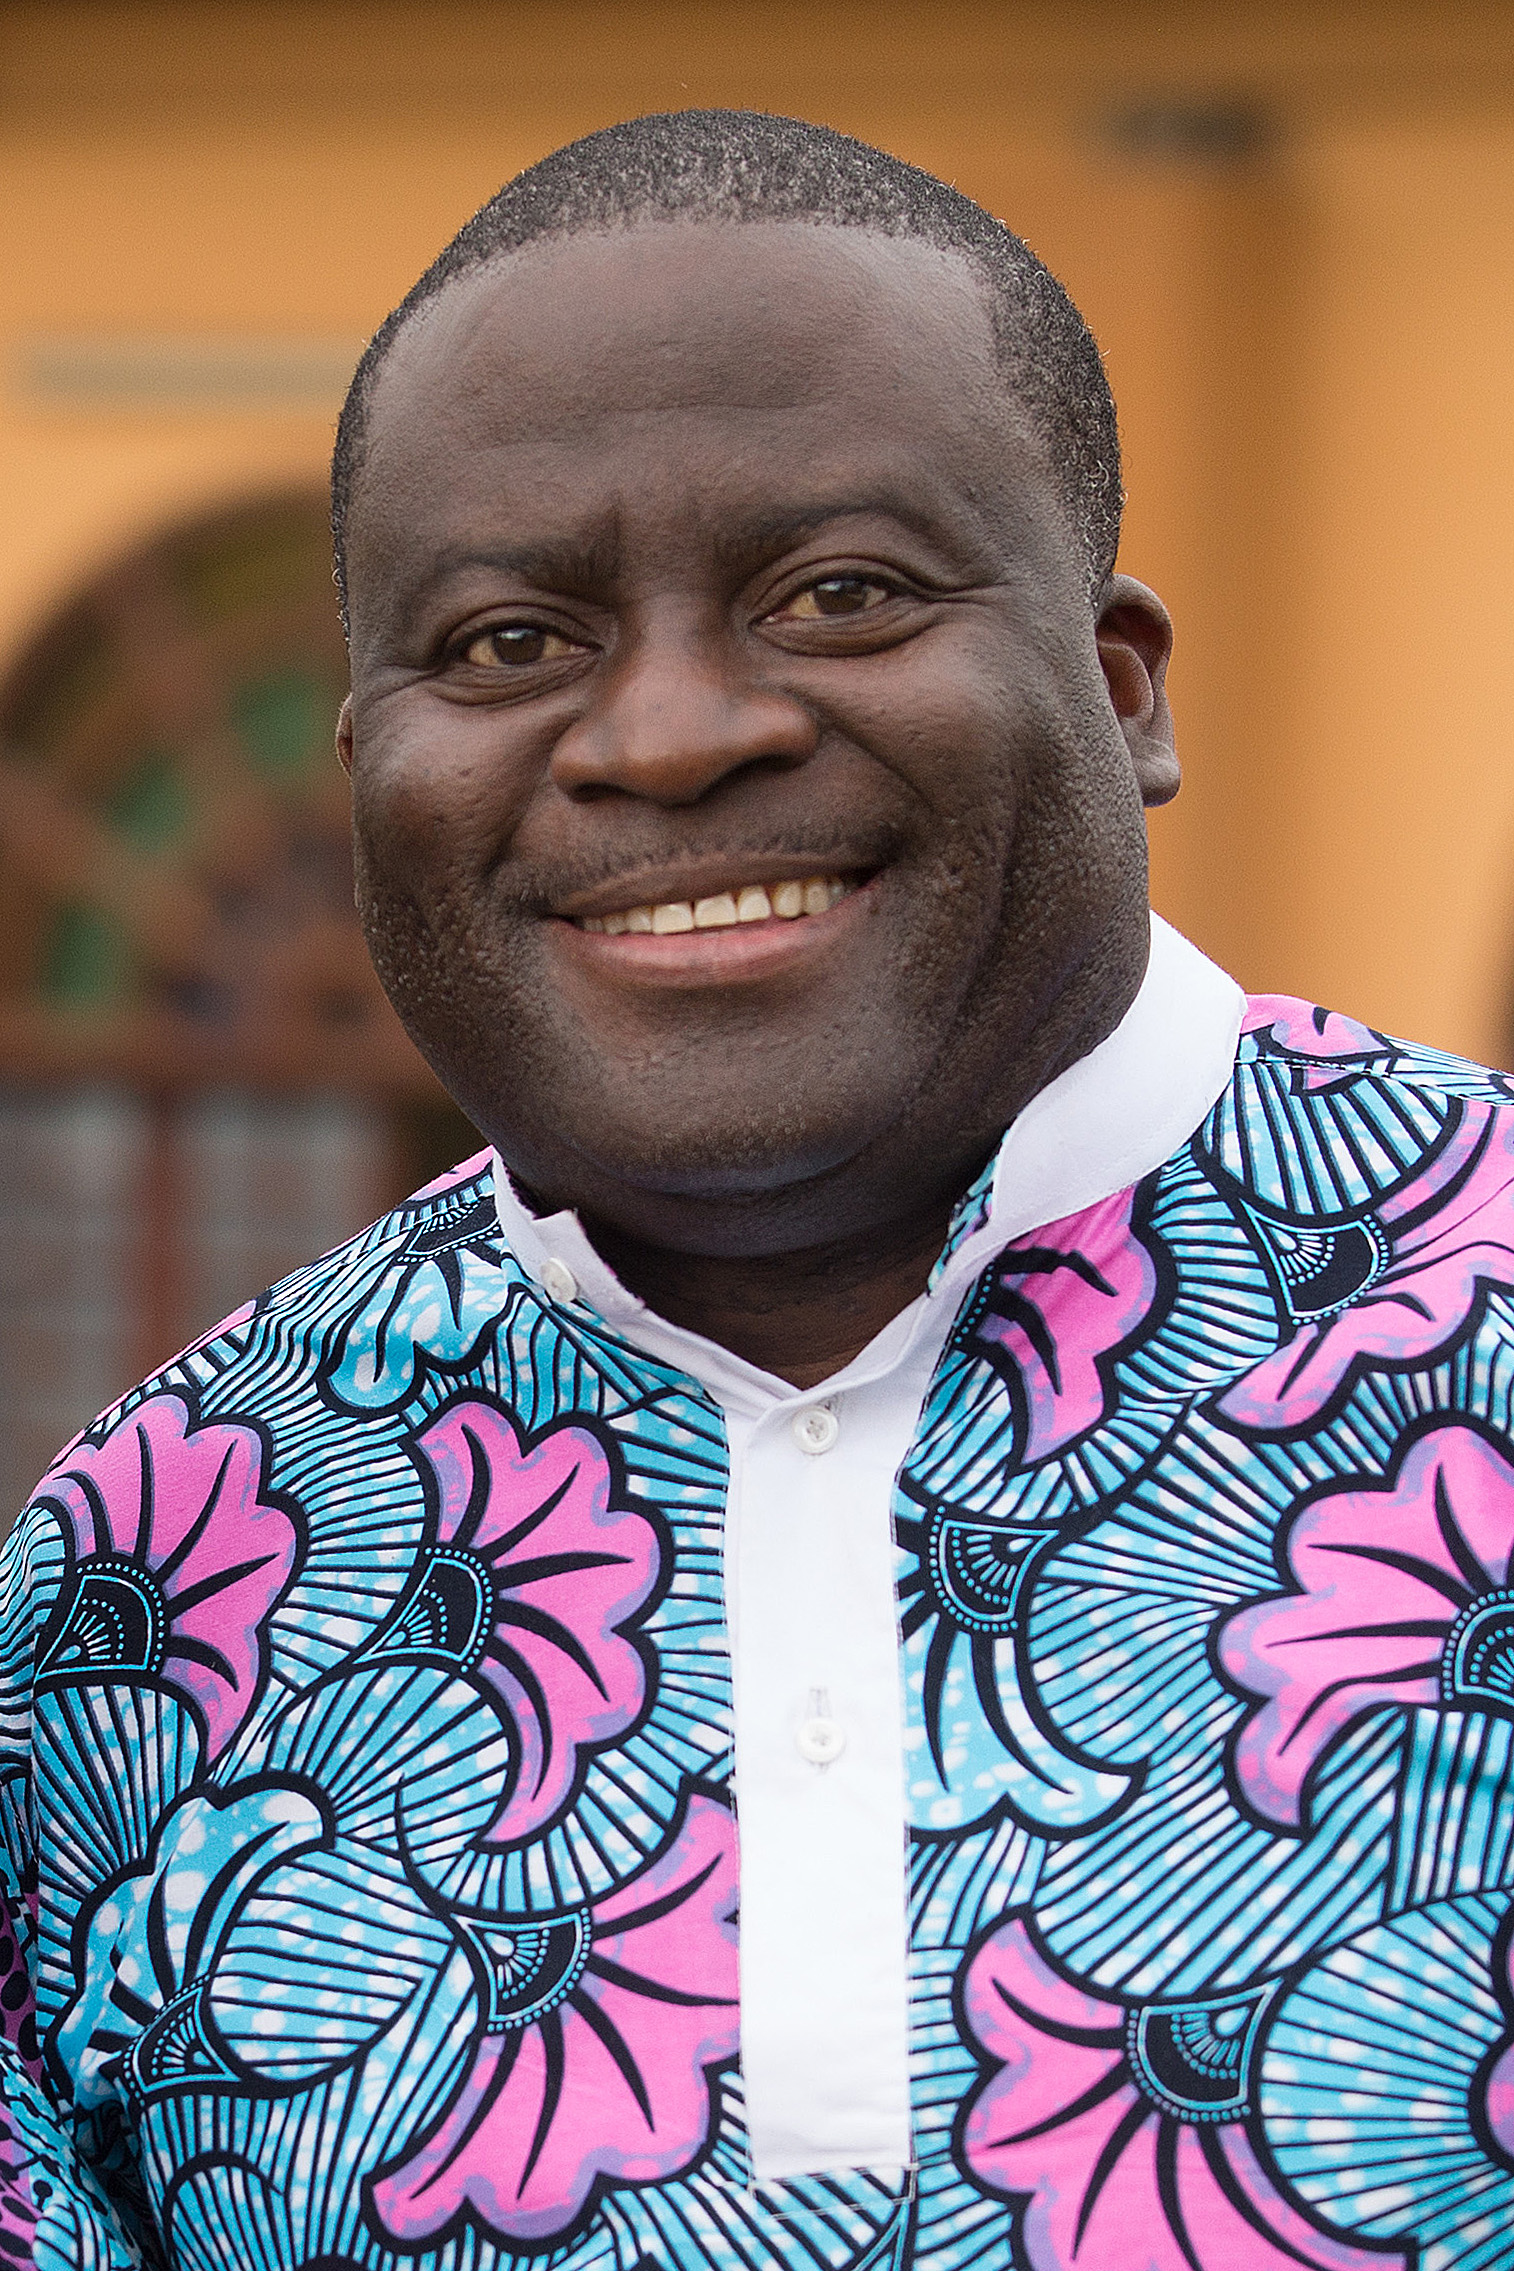 Photo of the Rev. Jean Claude Masuka Maleka by Mike DuBose, UMNS.